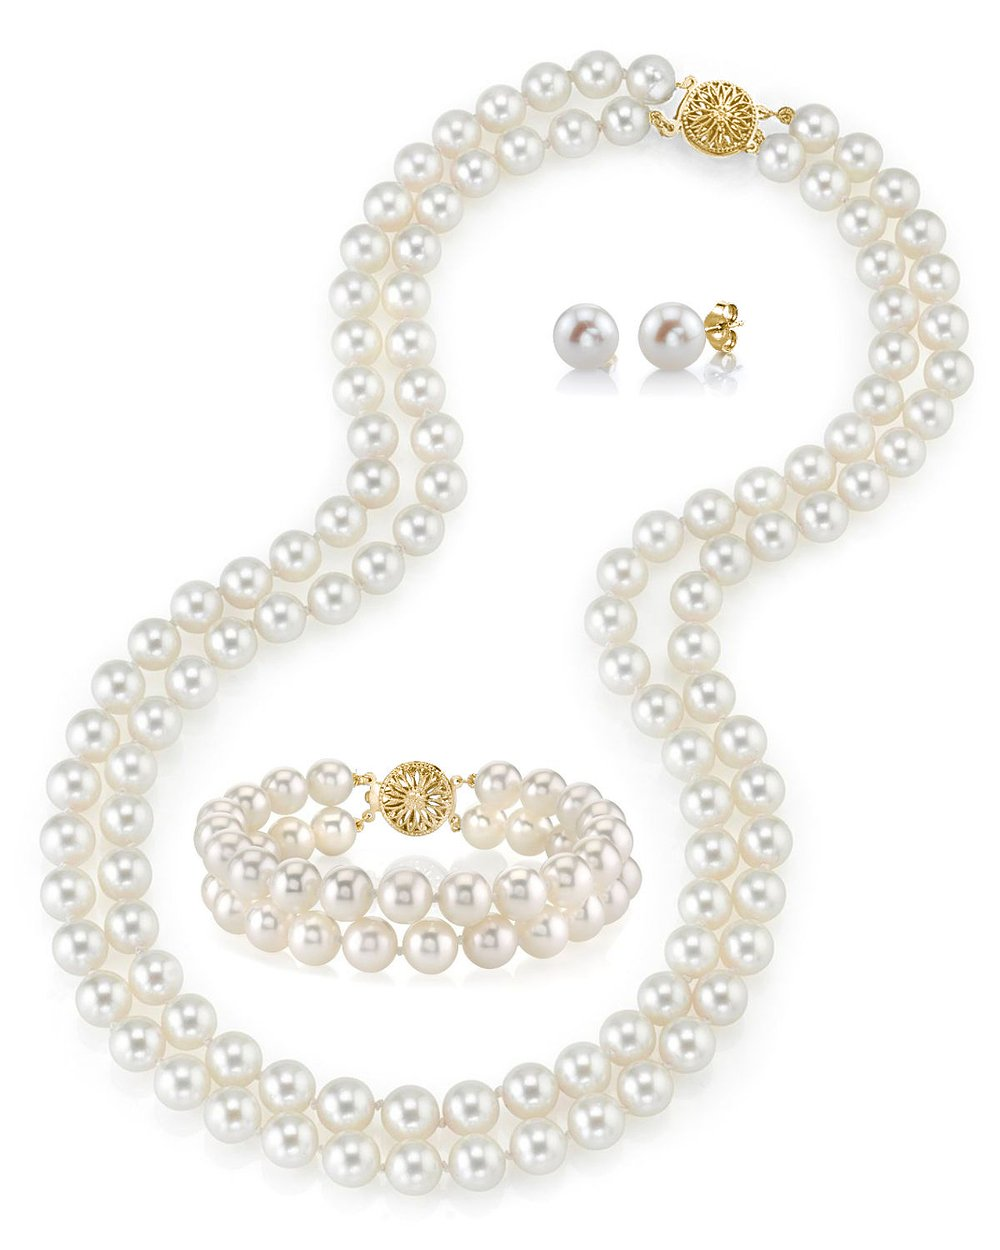 14K Gold White Freshwater Double Cultured Pearl Necklace, Bracelet & Earrings Set - AAAA Quality, 19-20''